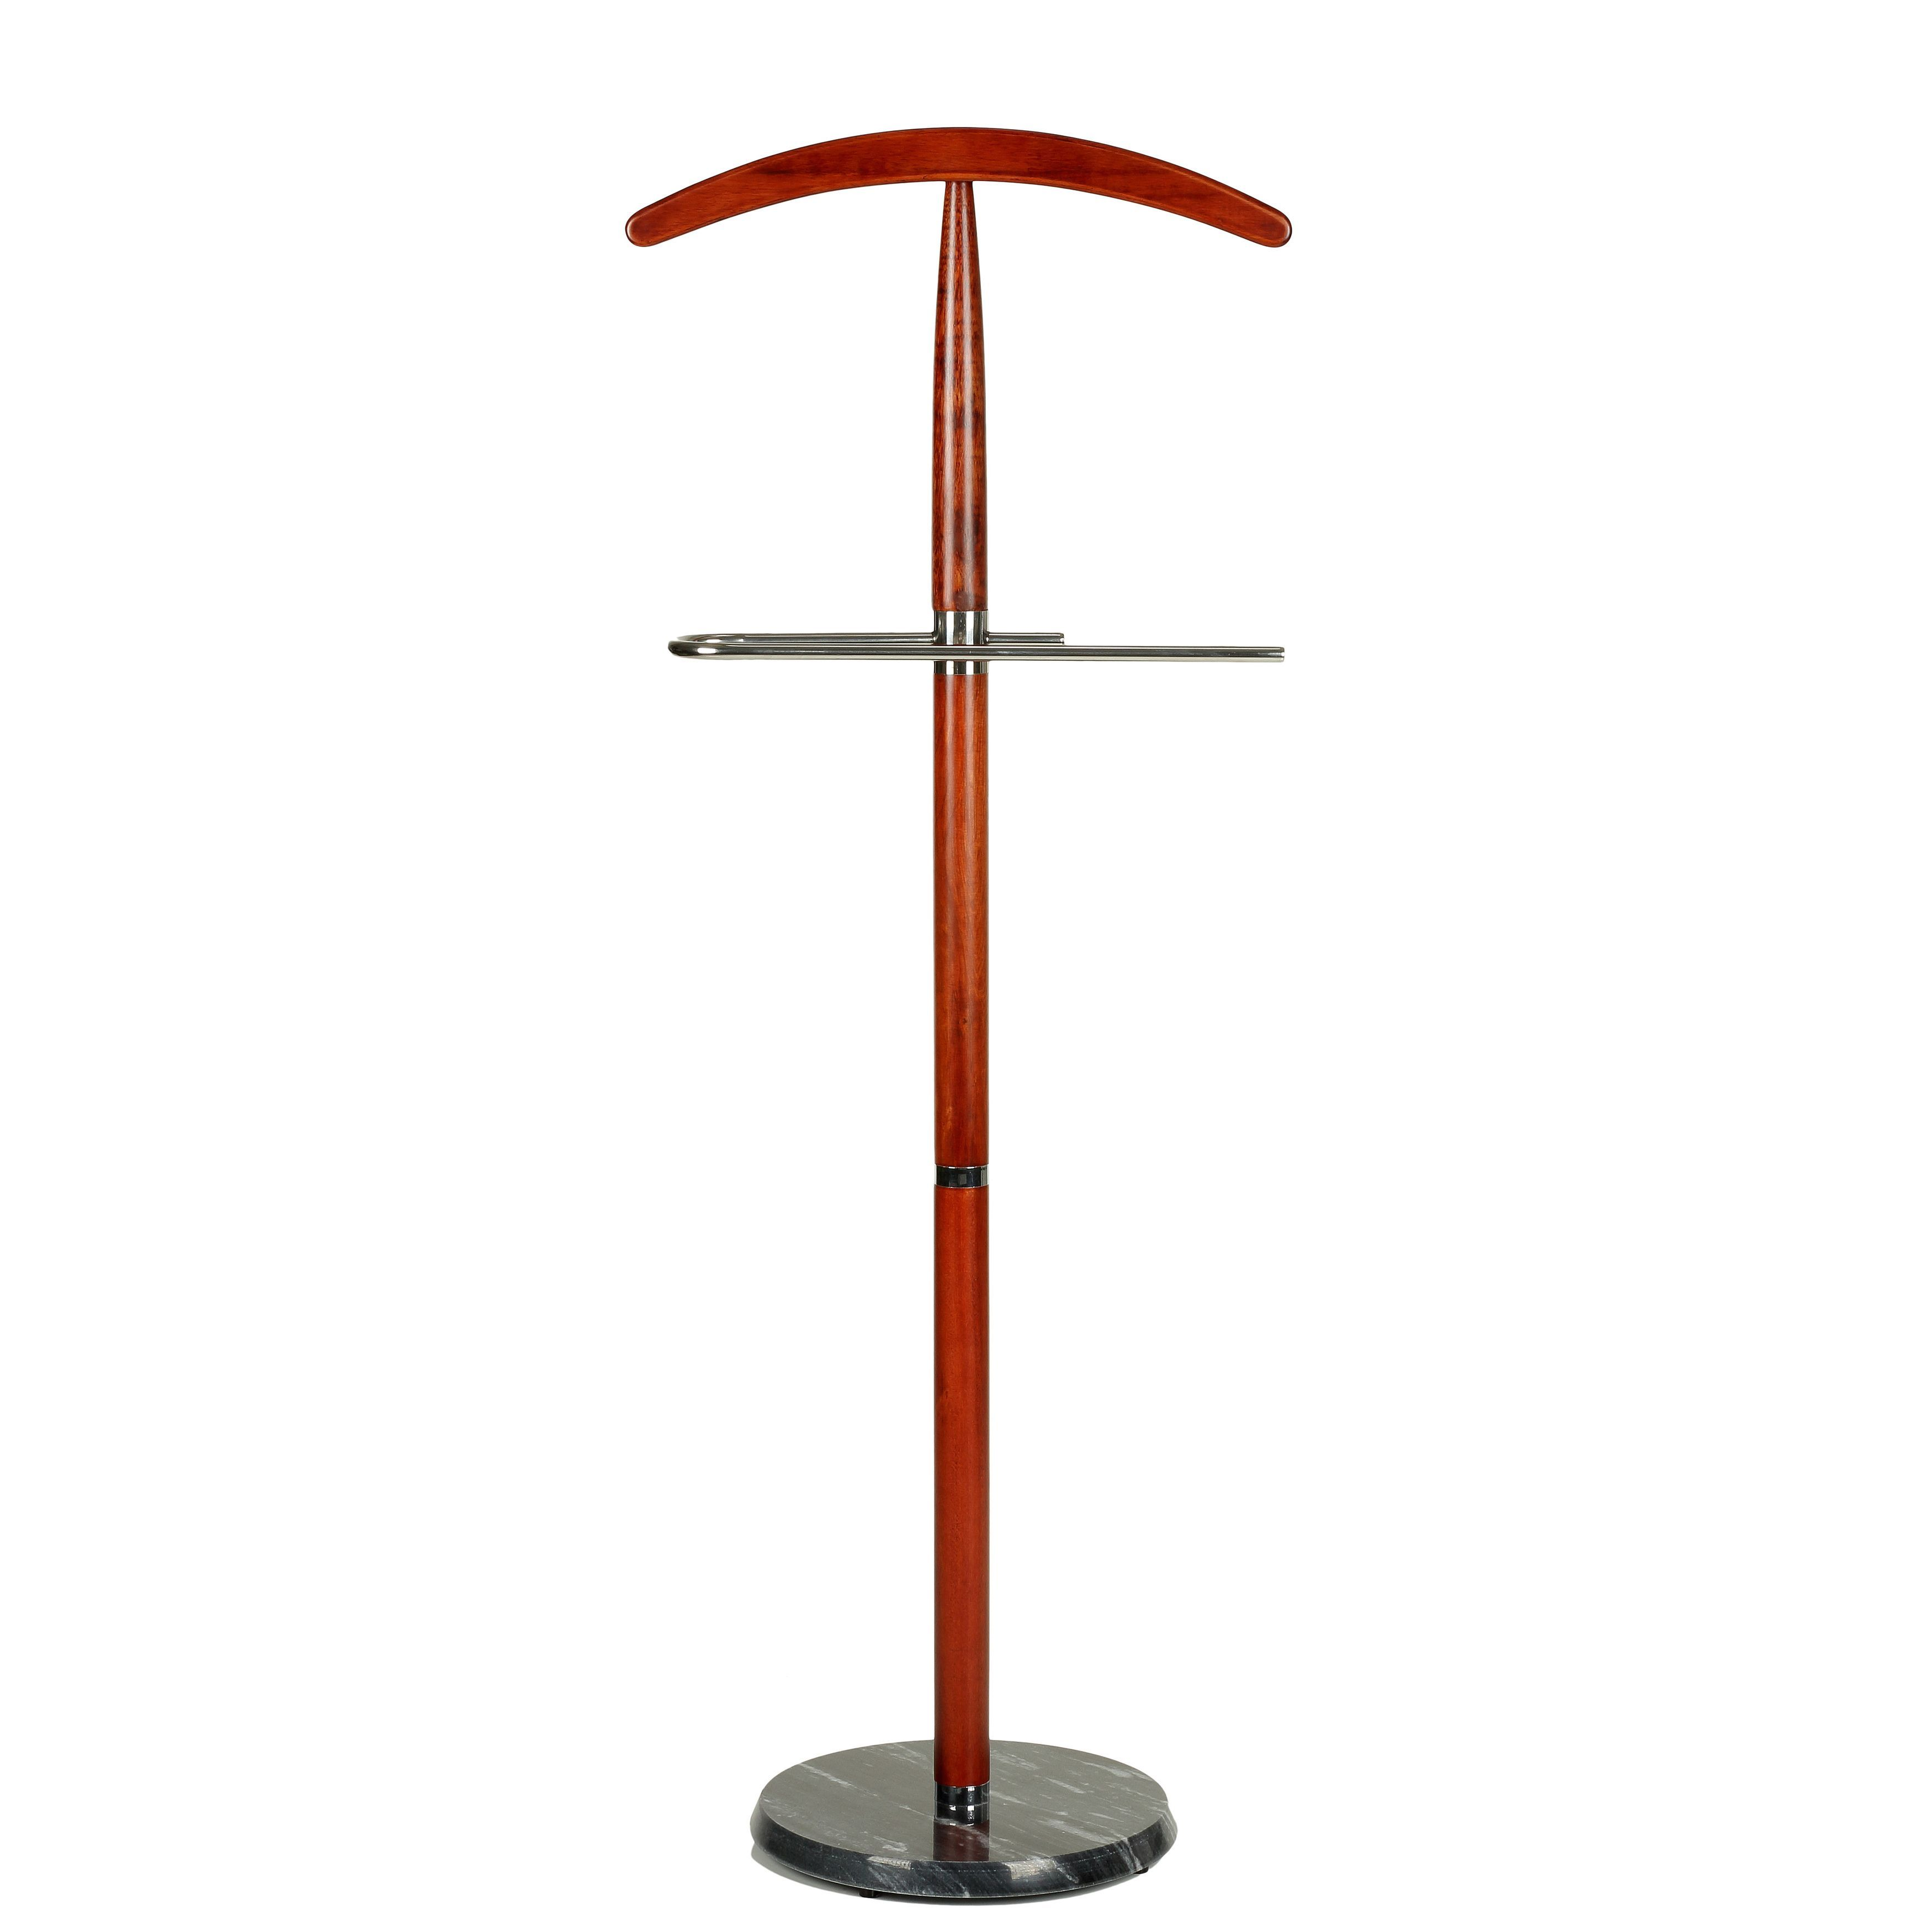 Cortesi Home CH-SR421106 Cambridge Suit Valet Stand in Cherry Wood with Base